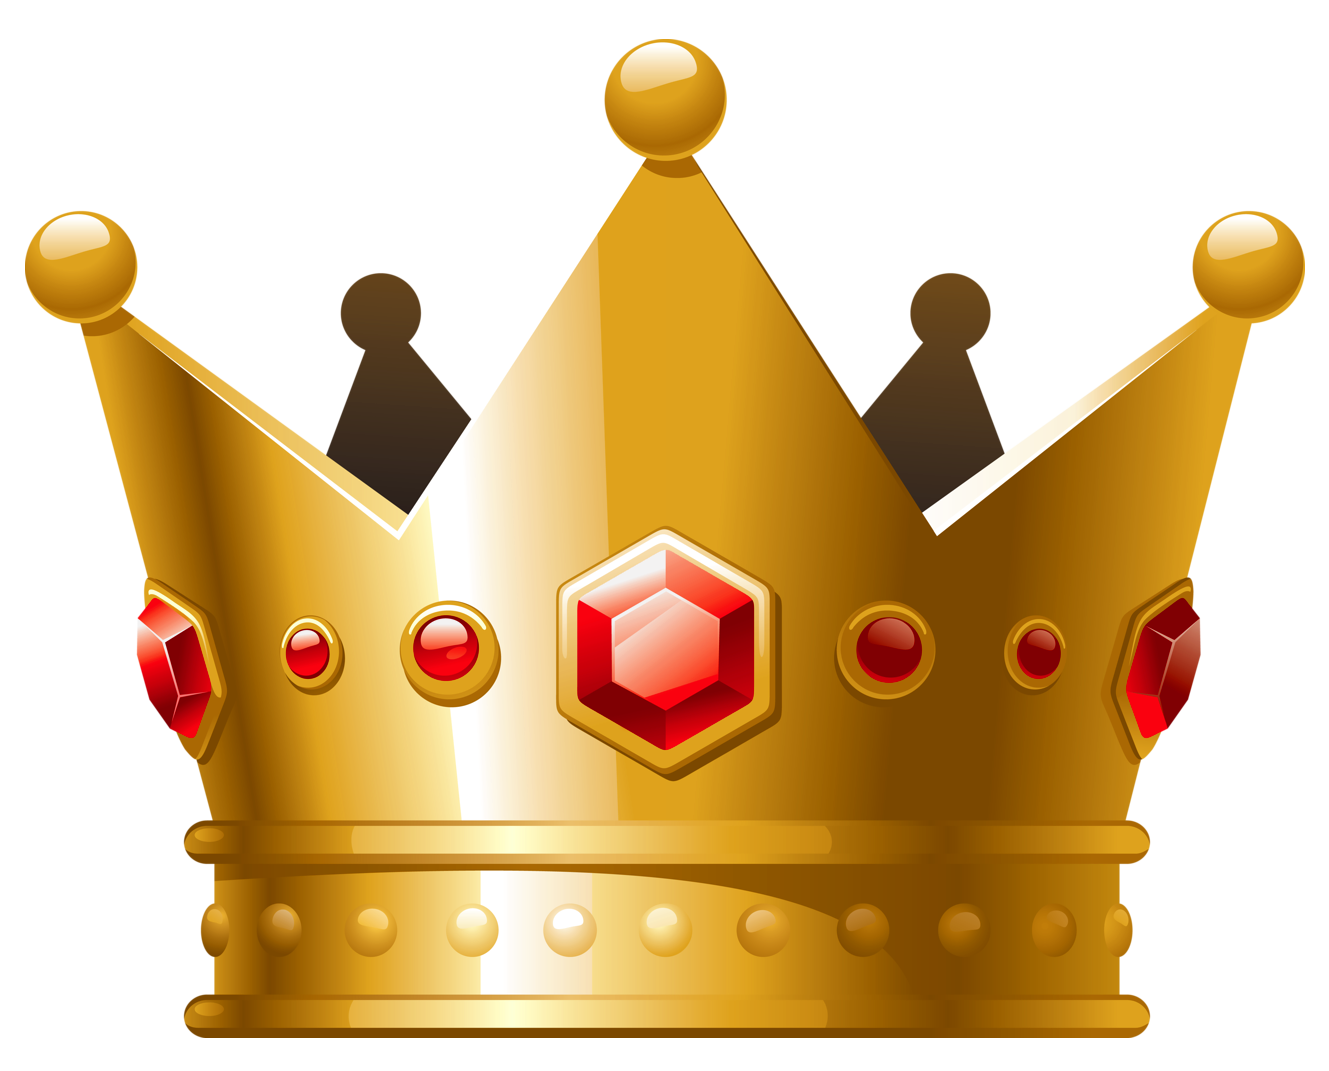 Gold with red diamonds. Crown clip art high resolution